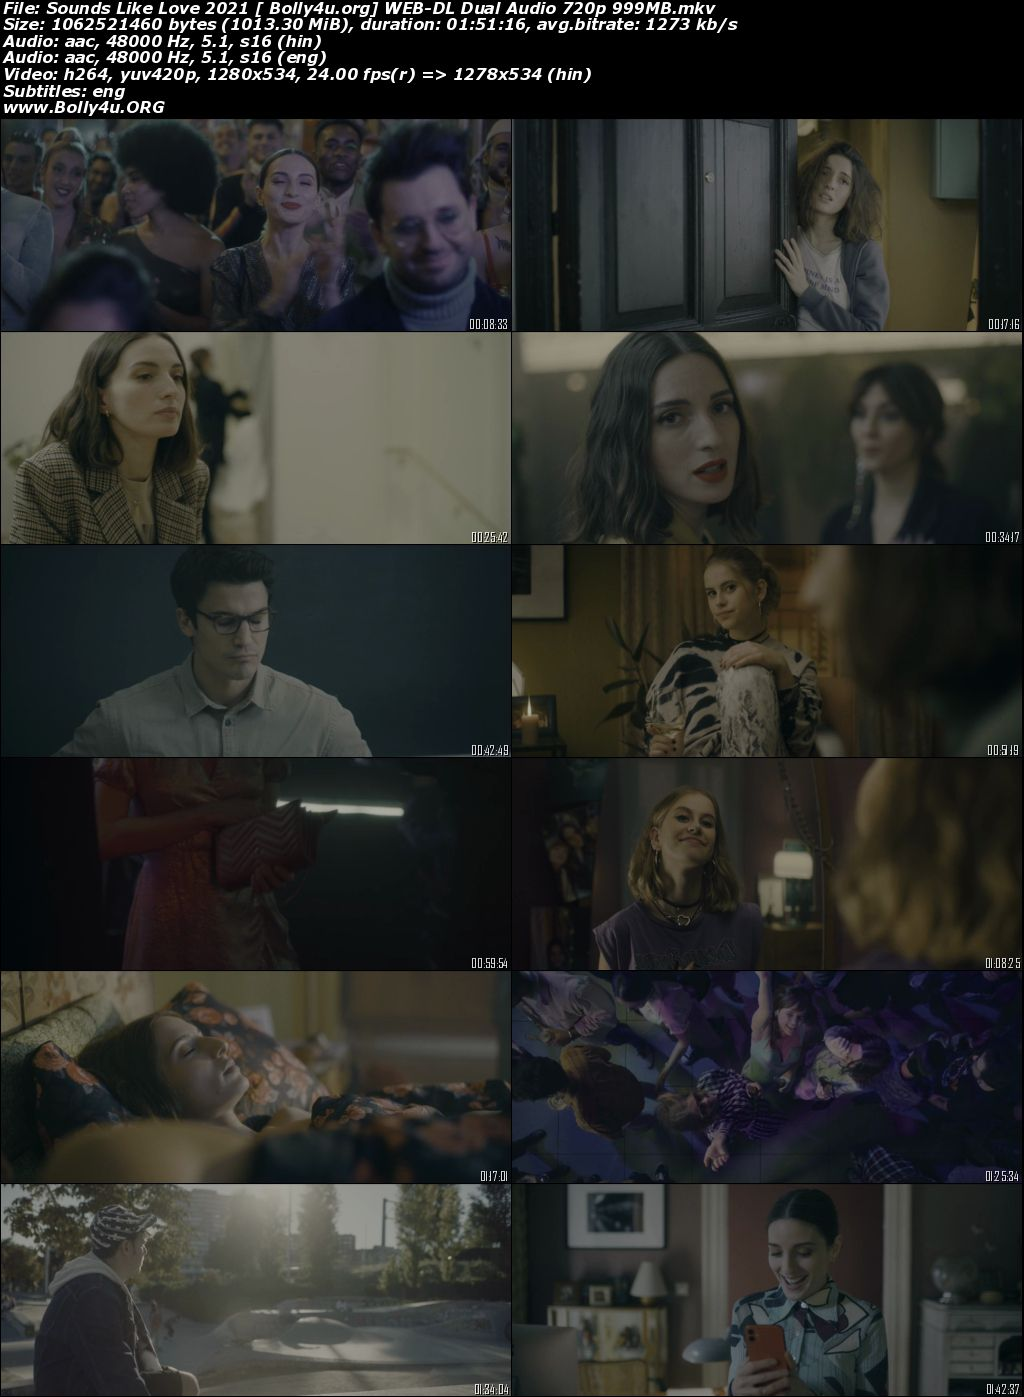 Sounds Like Love 2021 WEB-DL 999MB Hindi Dual Audio ORG 720p Download